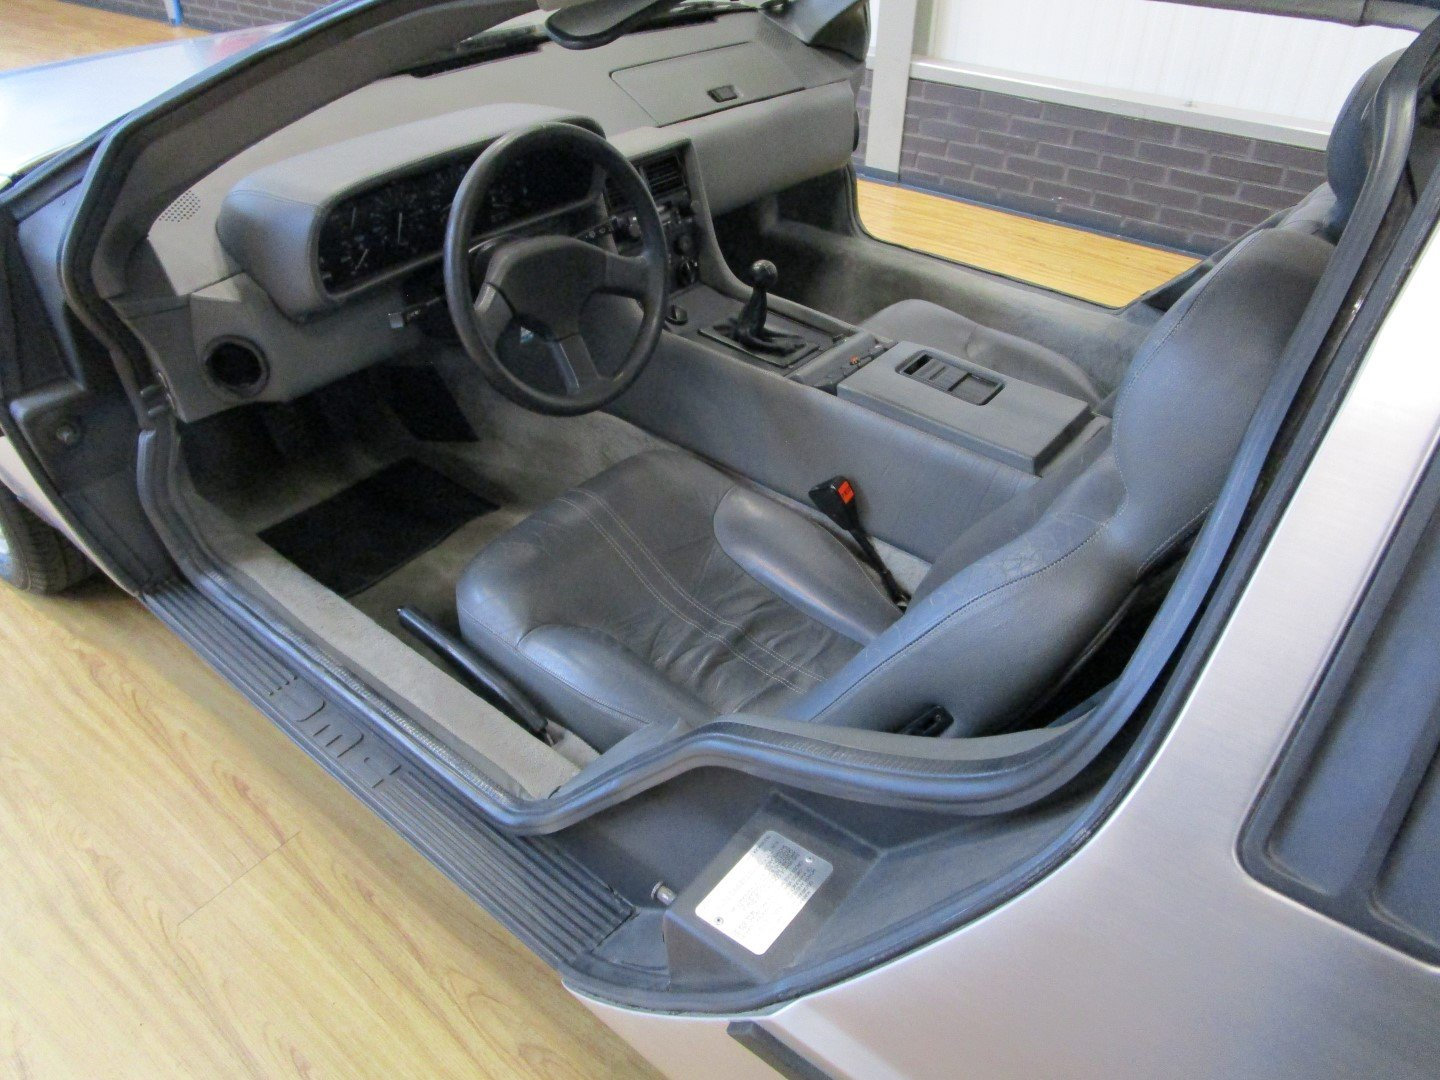 1983 DeLorean DMC-12 For Sale (picture 5 of 6)